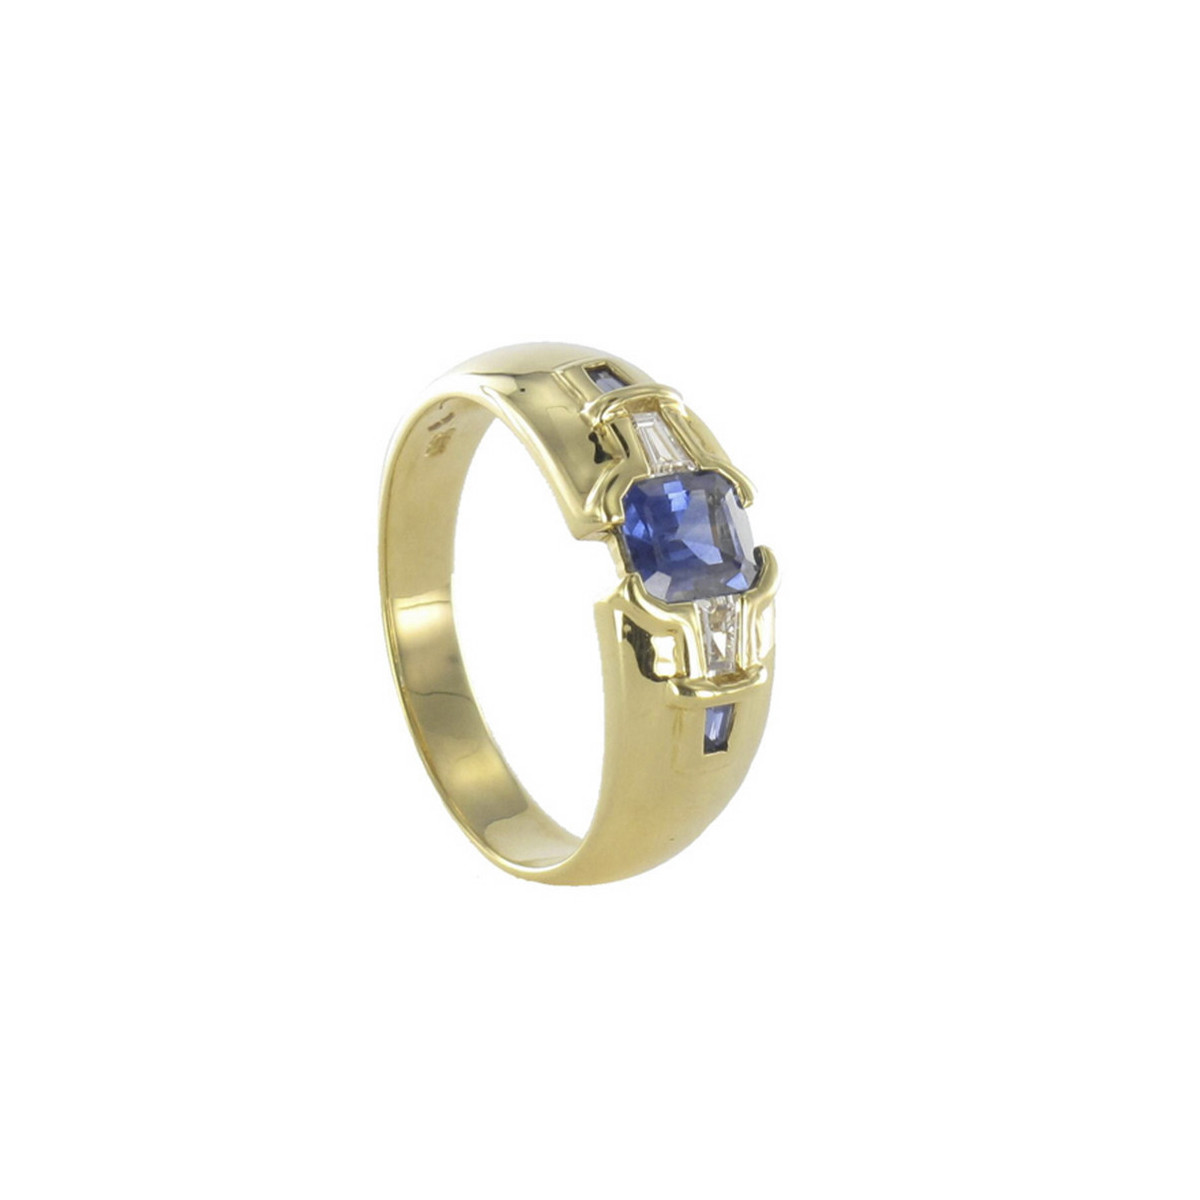 GOLD RING WITH PRECIOUS STONES